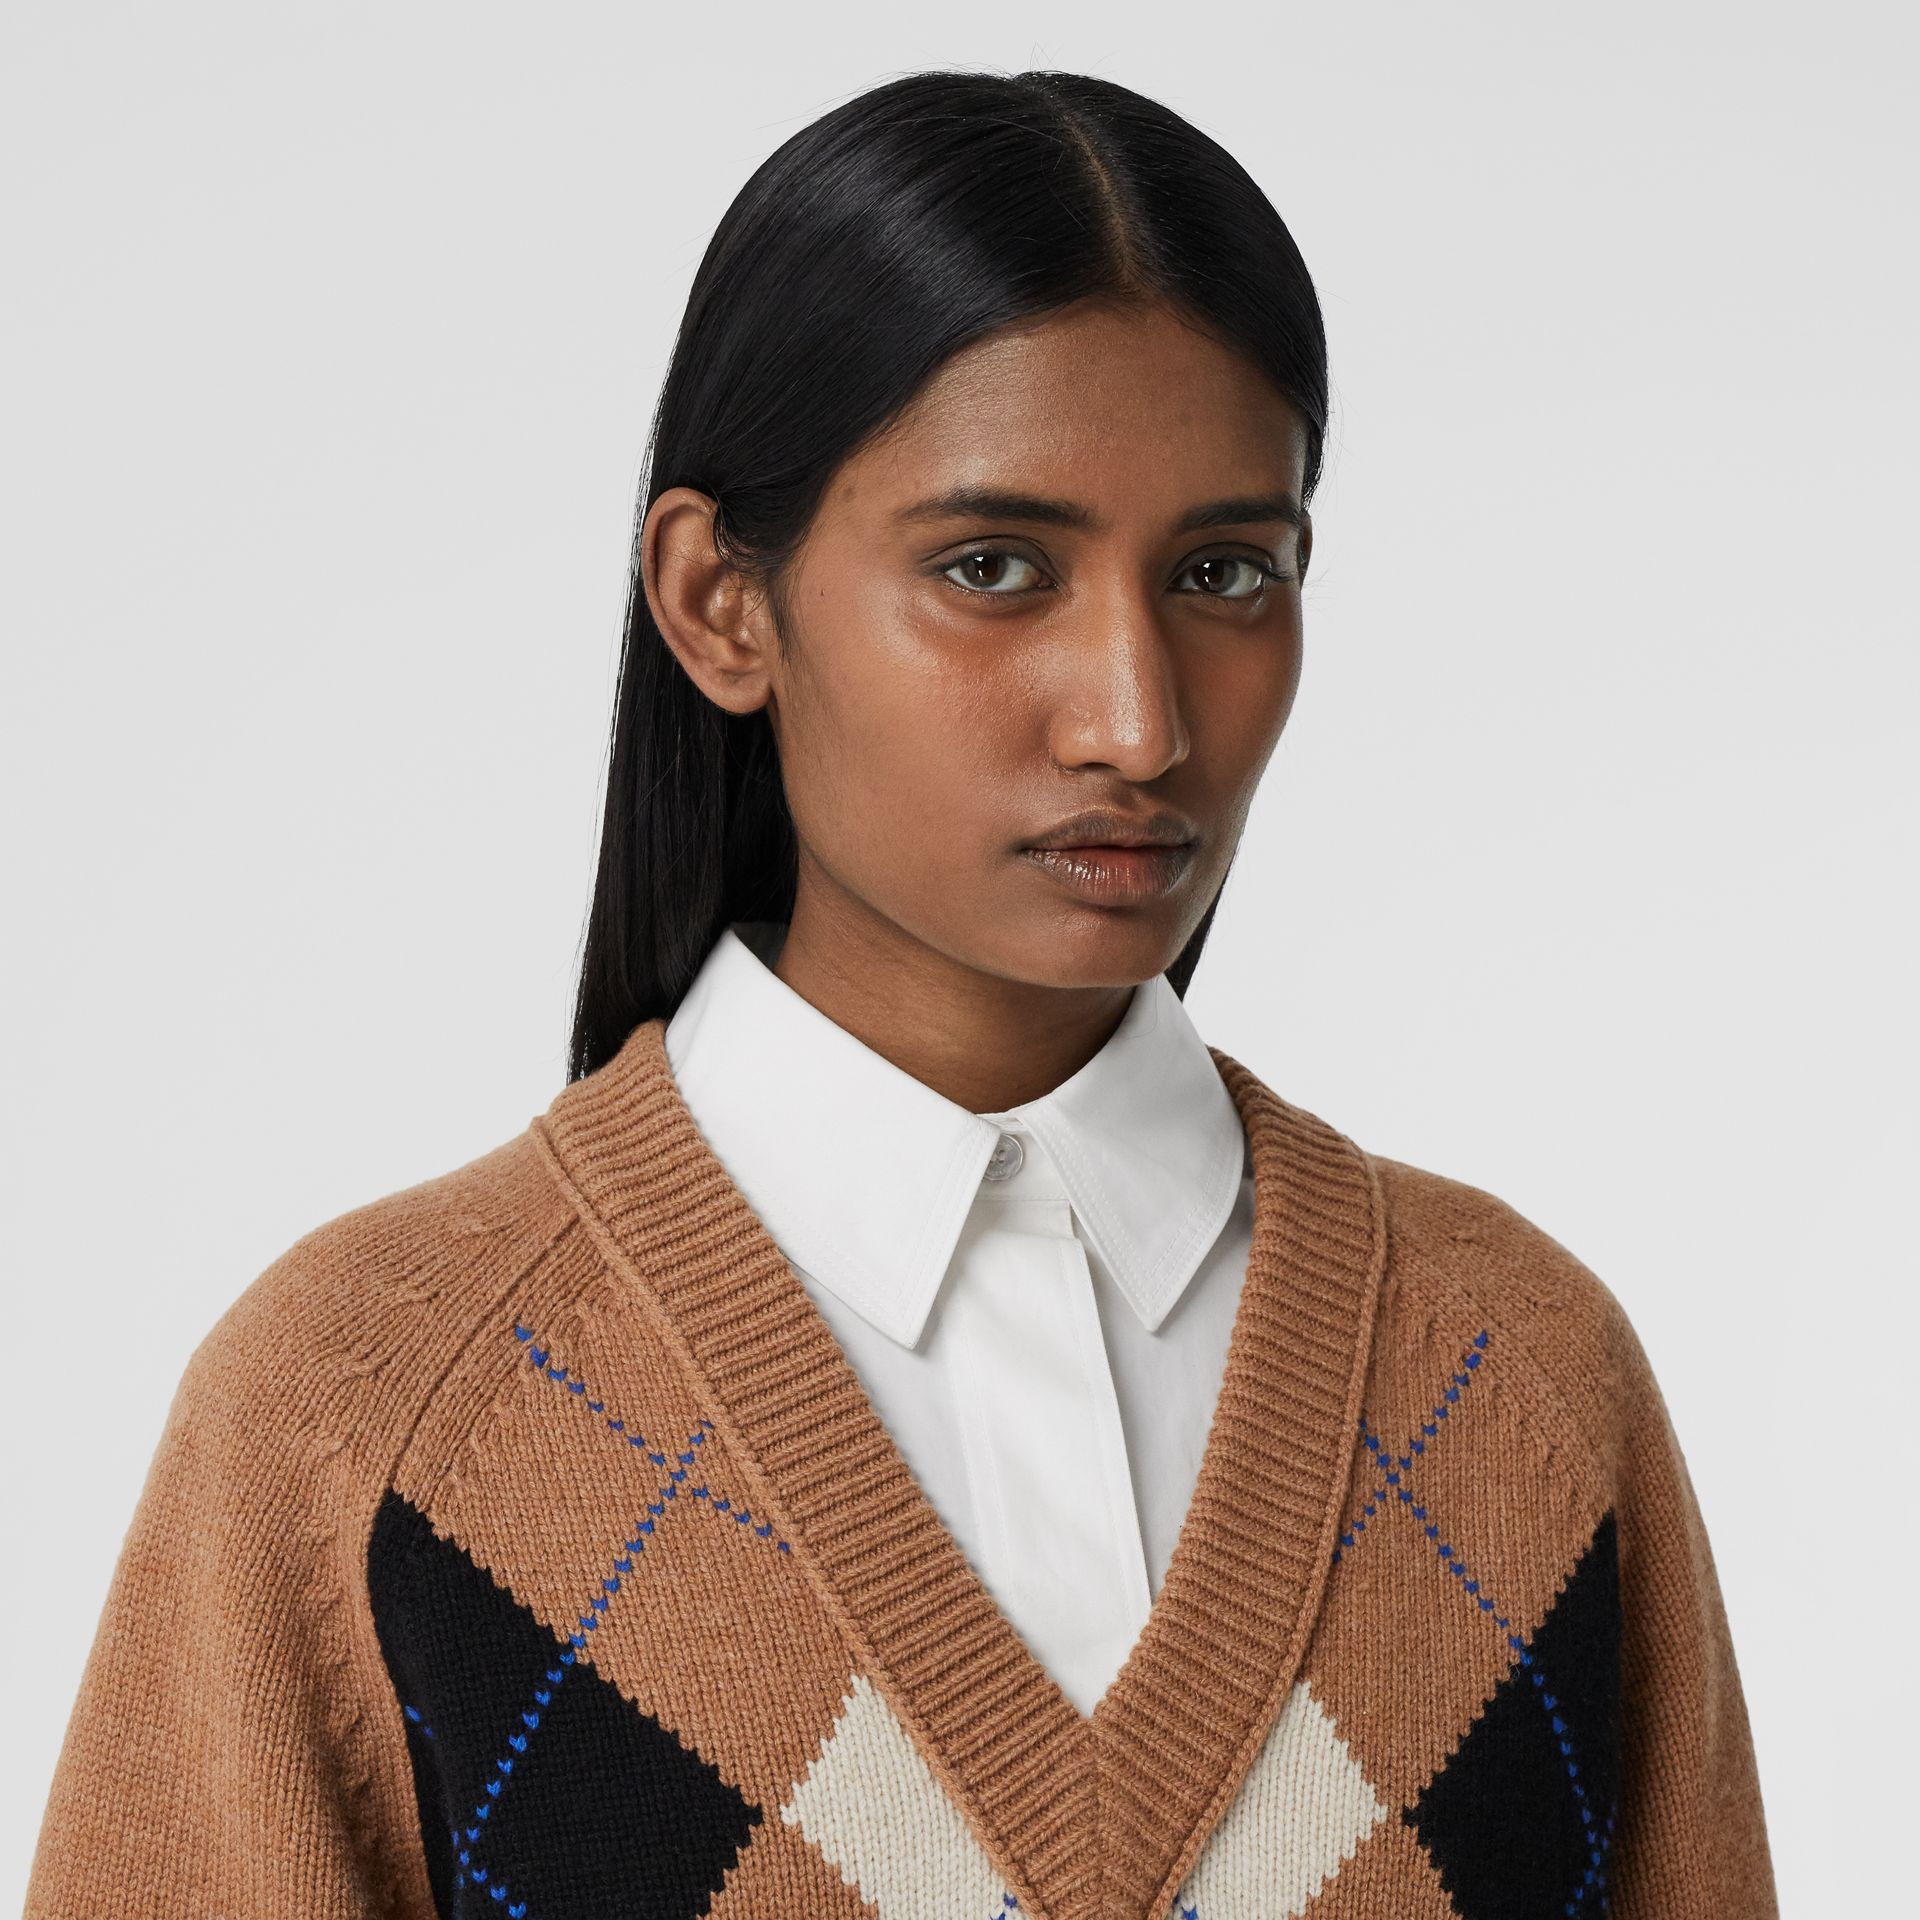 Cut-out Detail Argyle Intarsia Wool Cashmere Sweater in Camel - Women | Burberry - gallery image 1